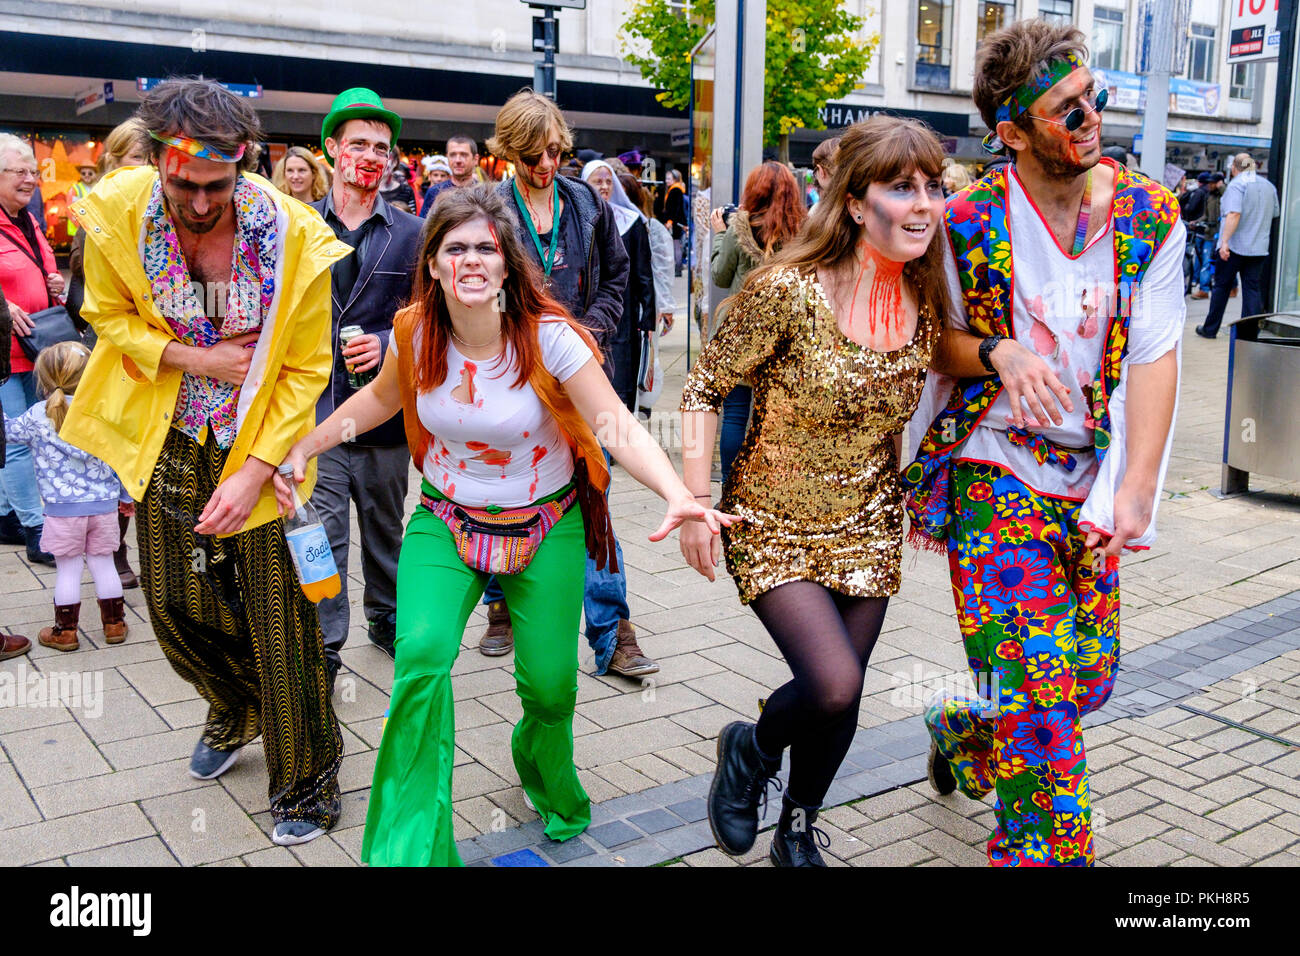 Bristol, UK. 28th Oct, 2017. People dressed as zombies are pictured as they take part in a zombie walk through the city centre. Stock Photo